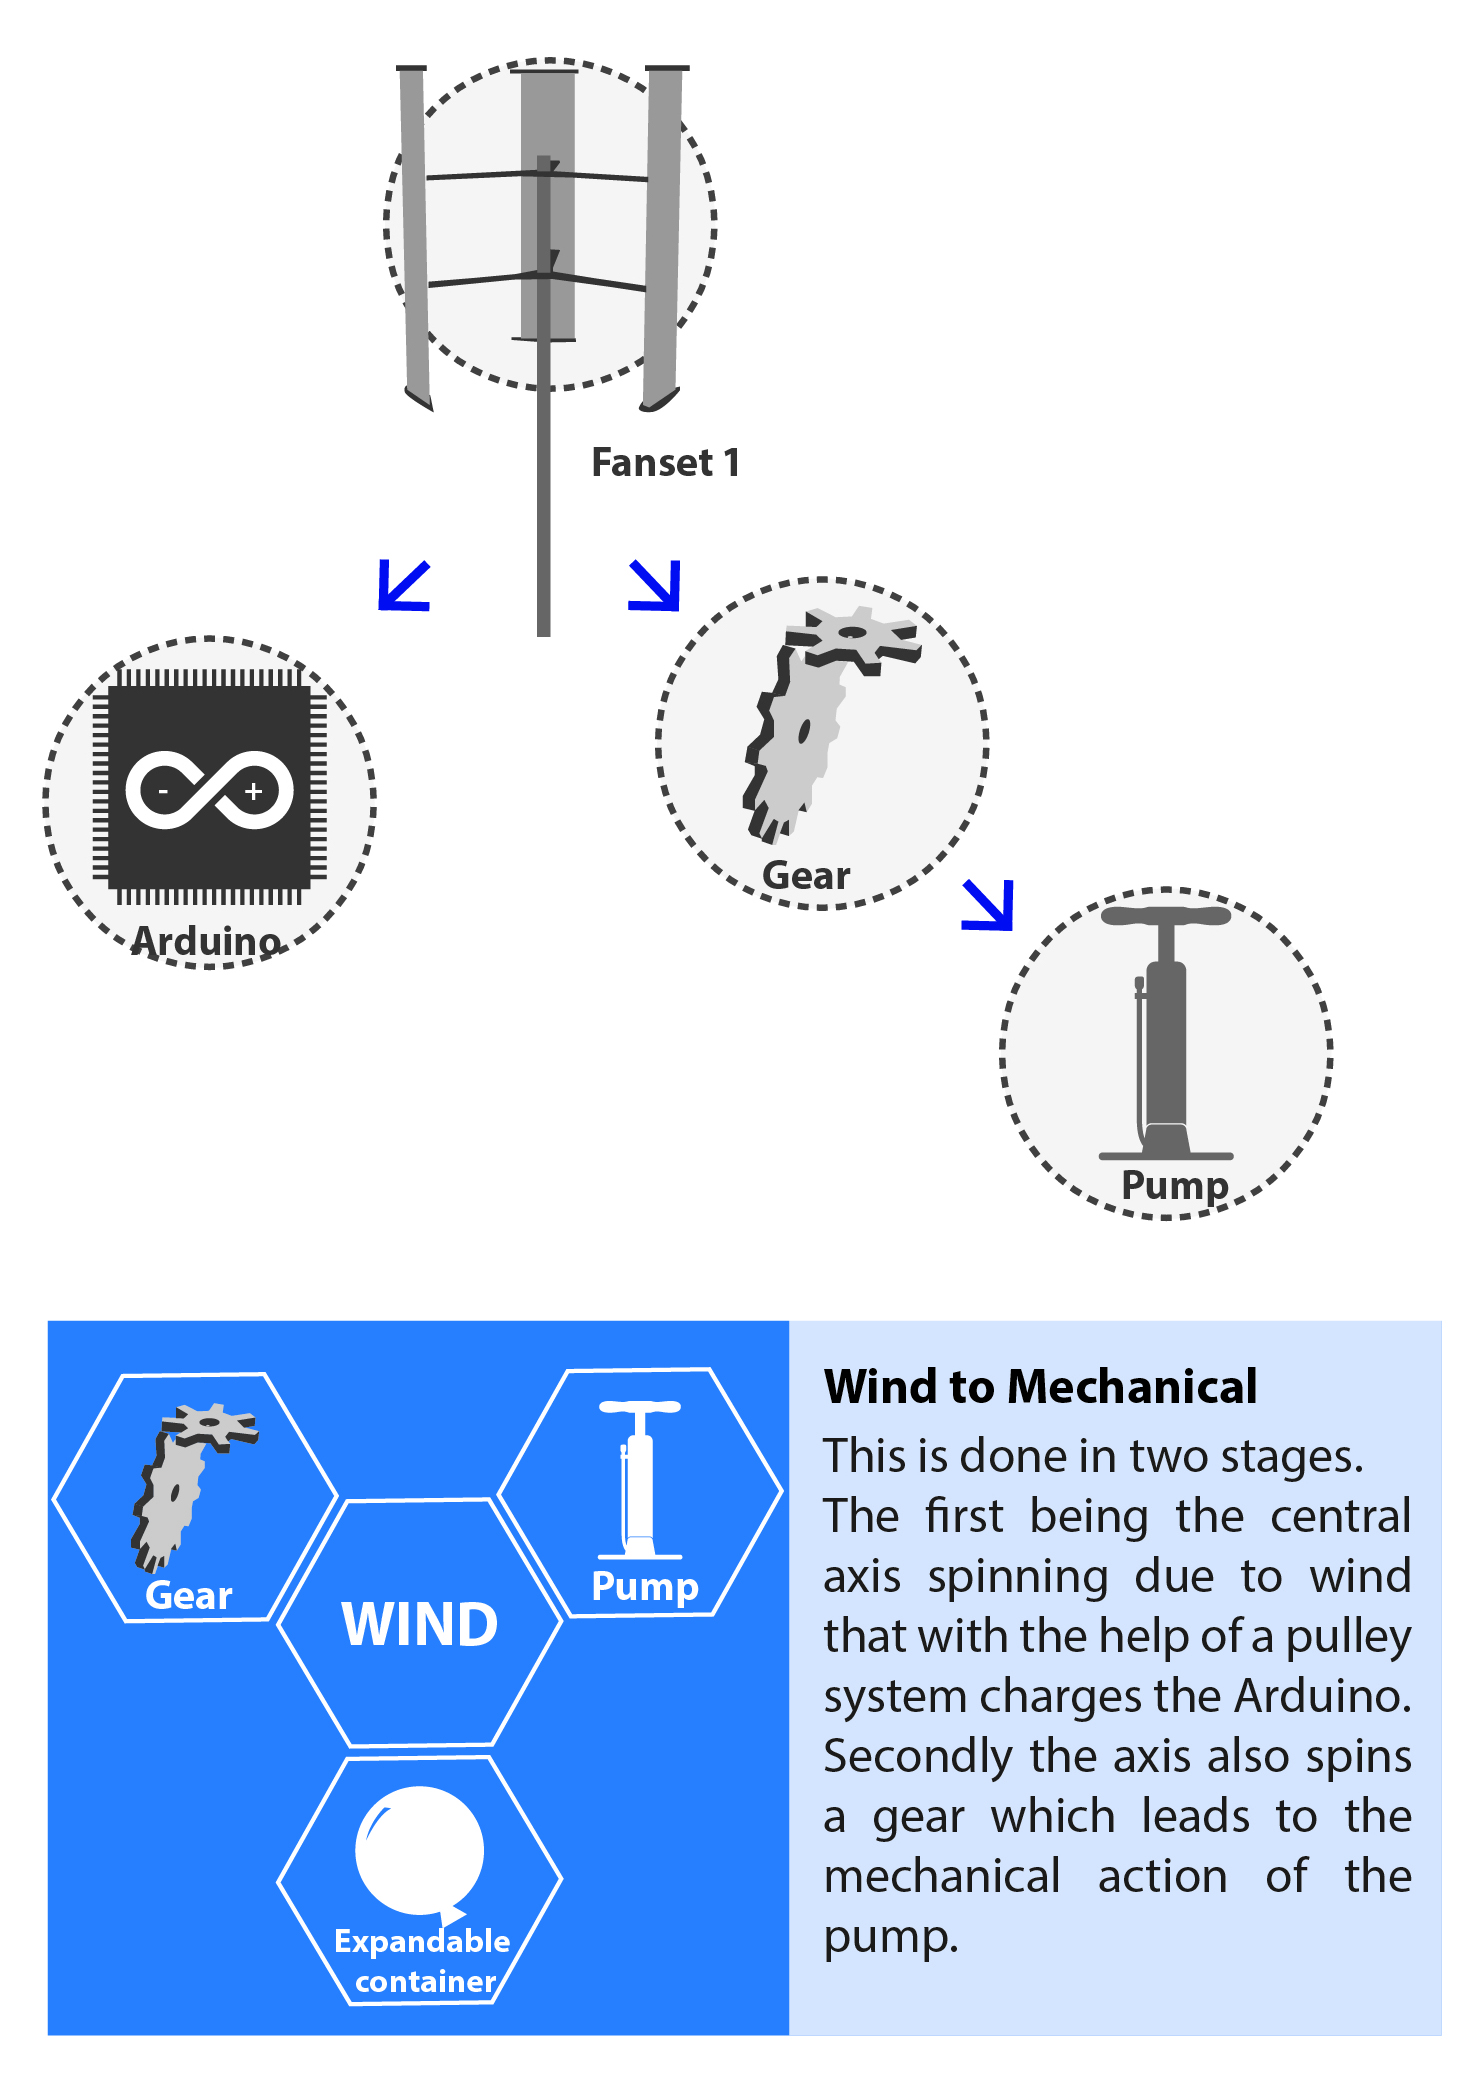 Lungs By Fantastics Mechanical Energy Diagram In This System Is Produced Two Mechanisms From Wind To Creating The Pumping Action And That Spins